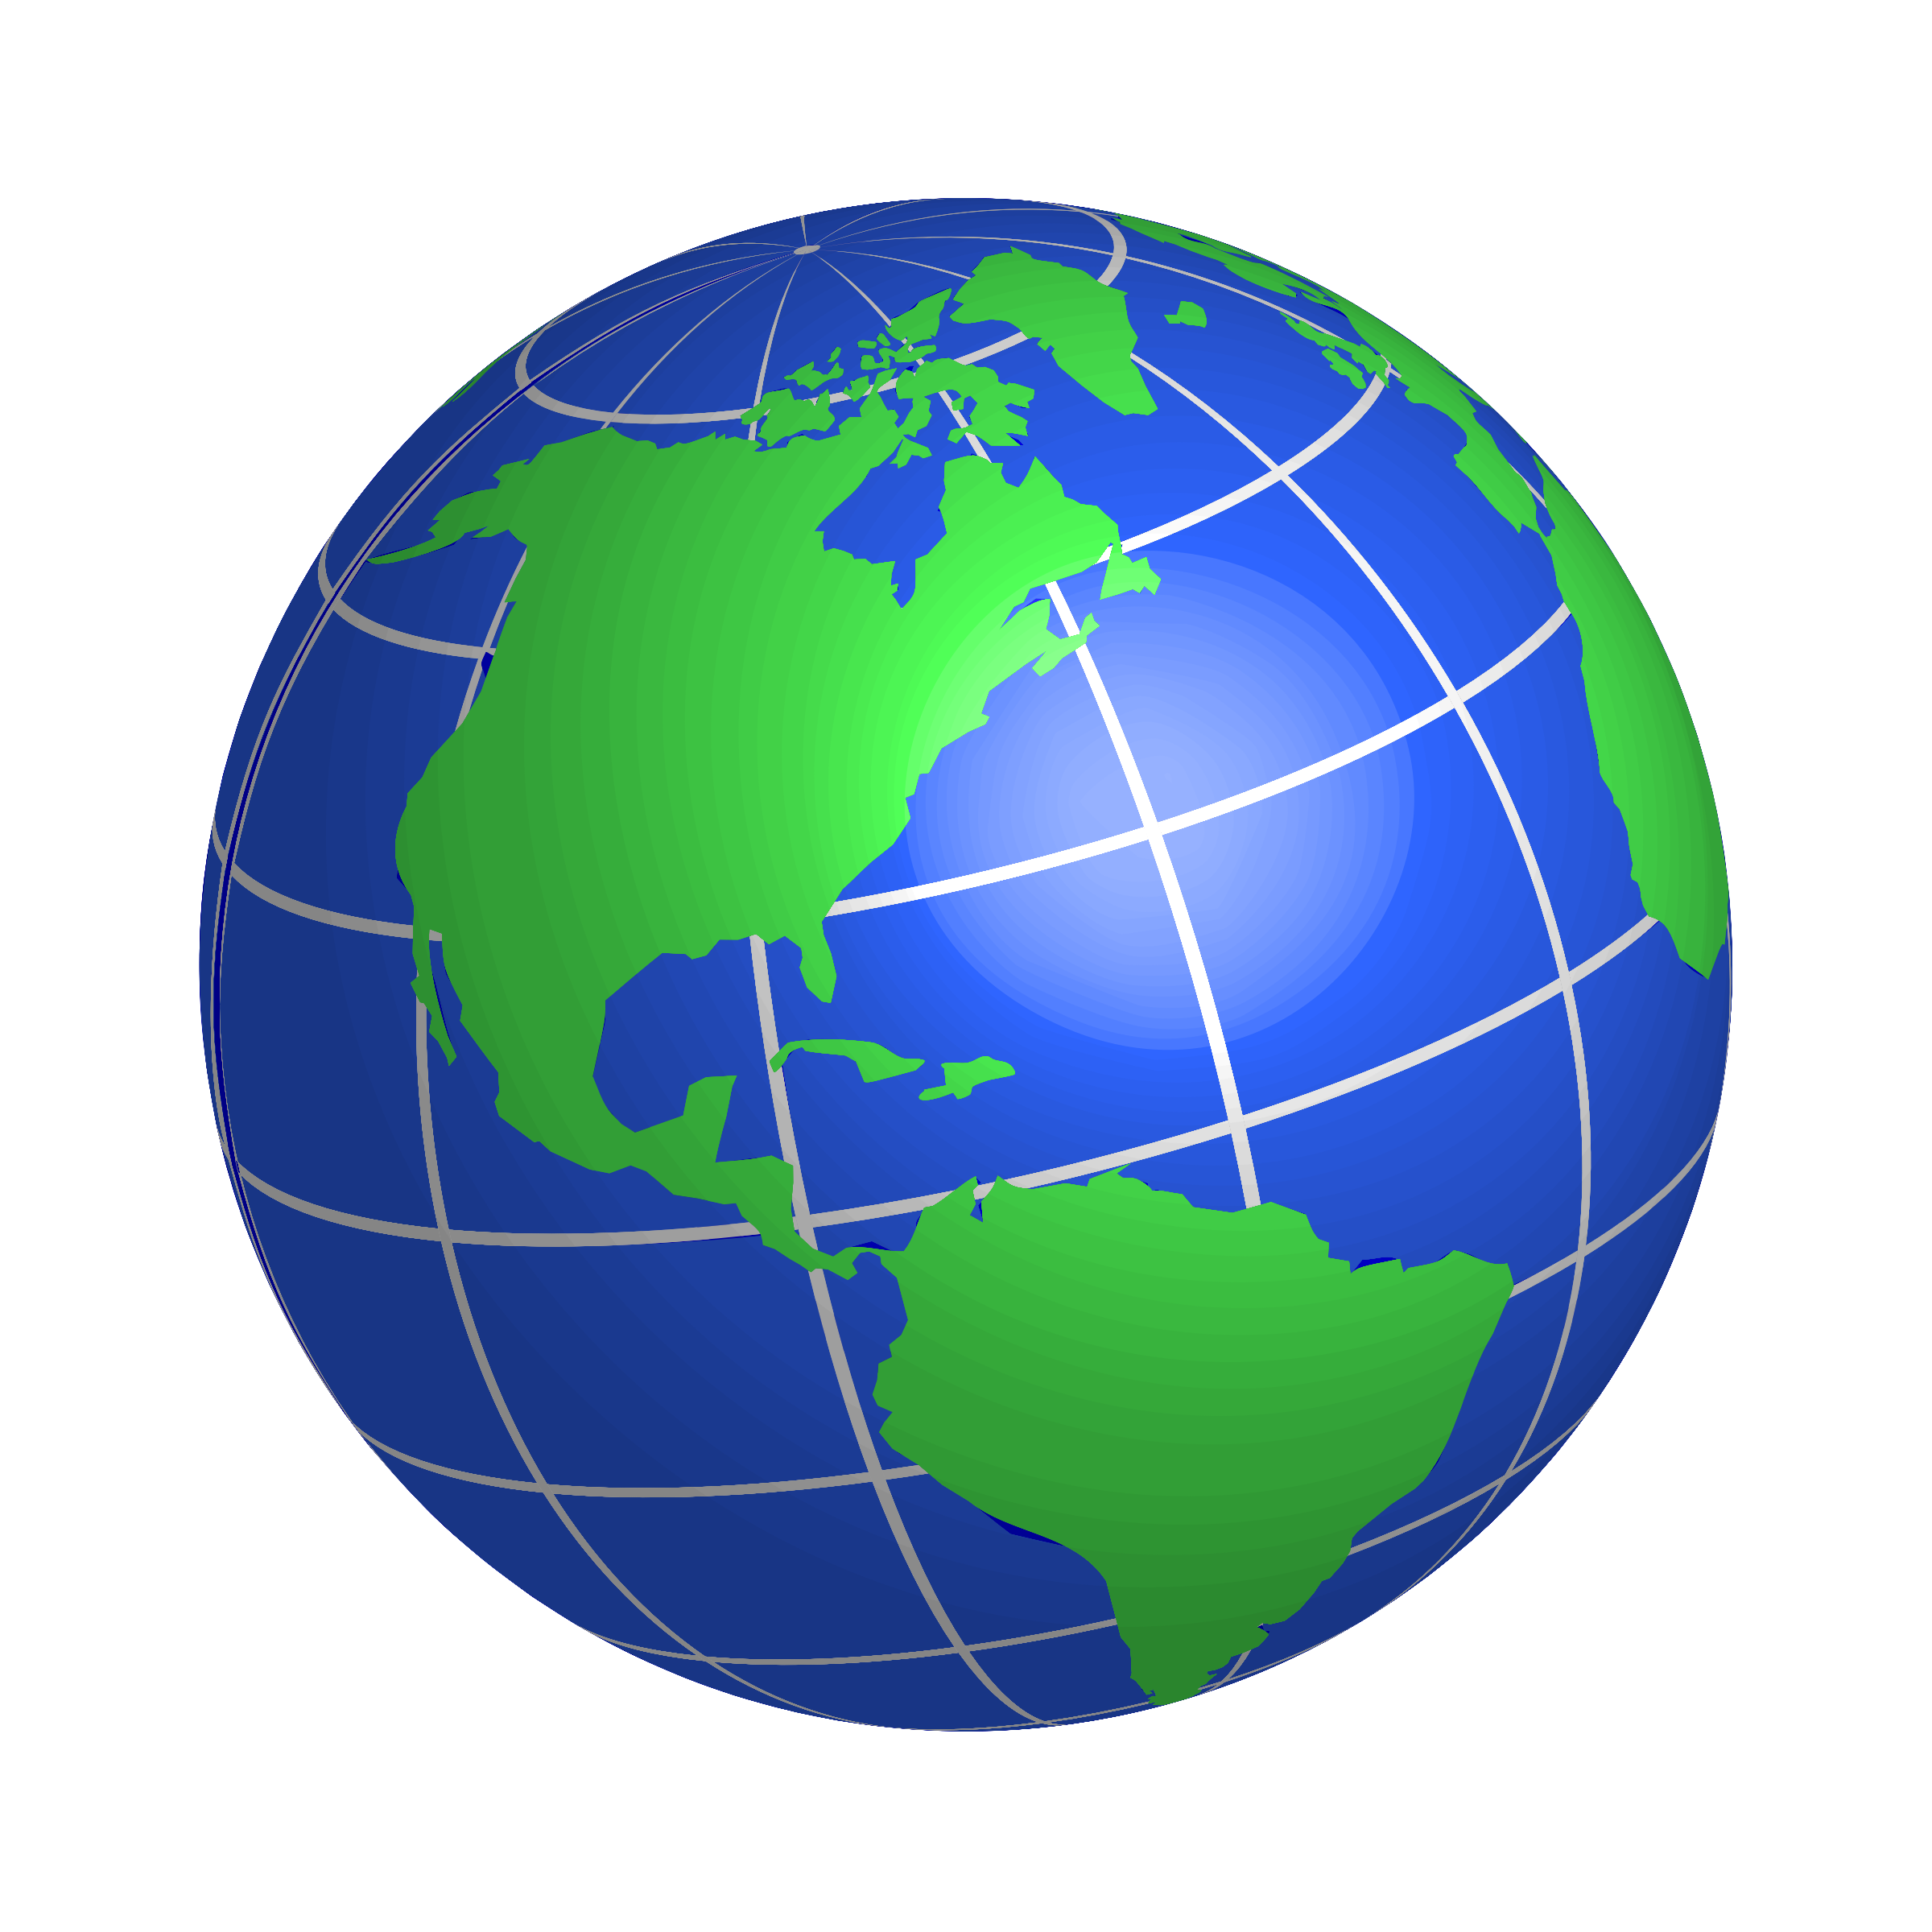 Download - Free PNG HD World Globe